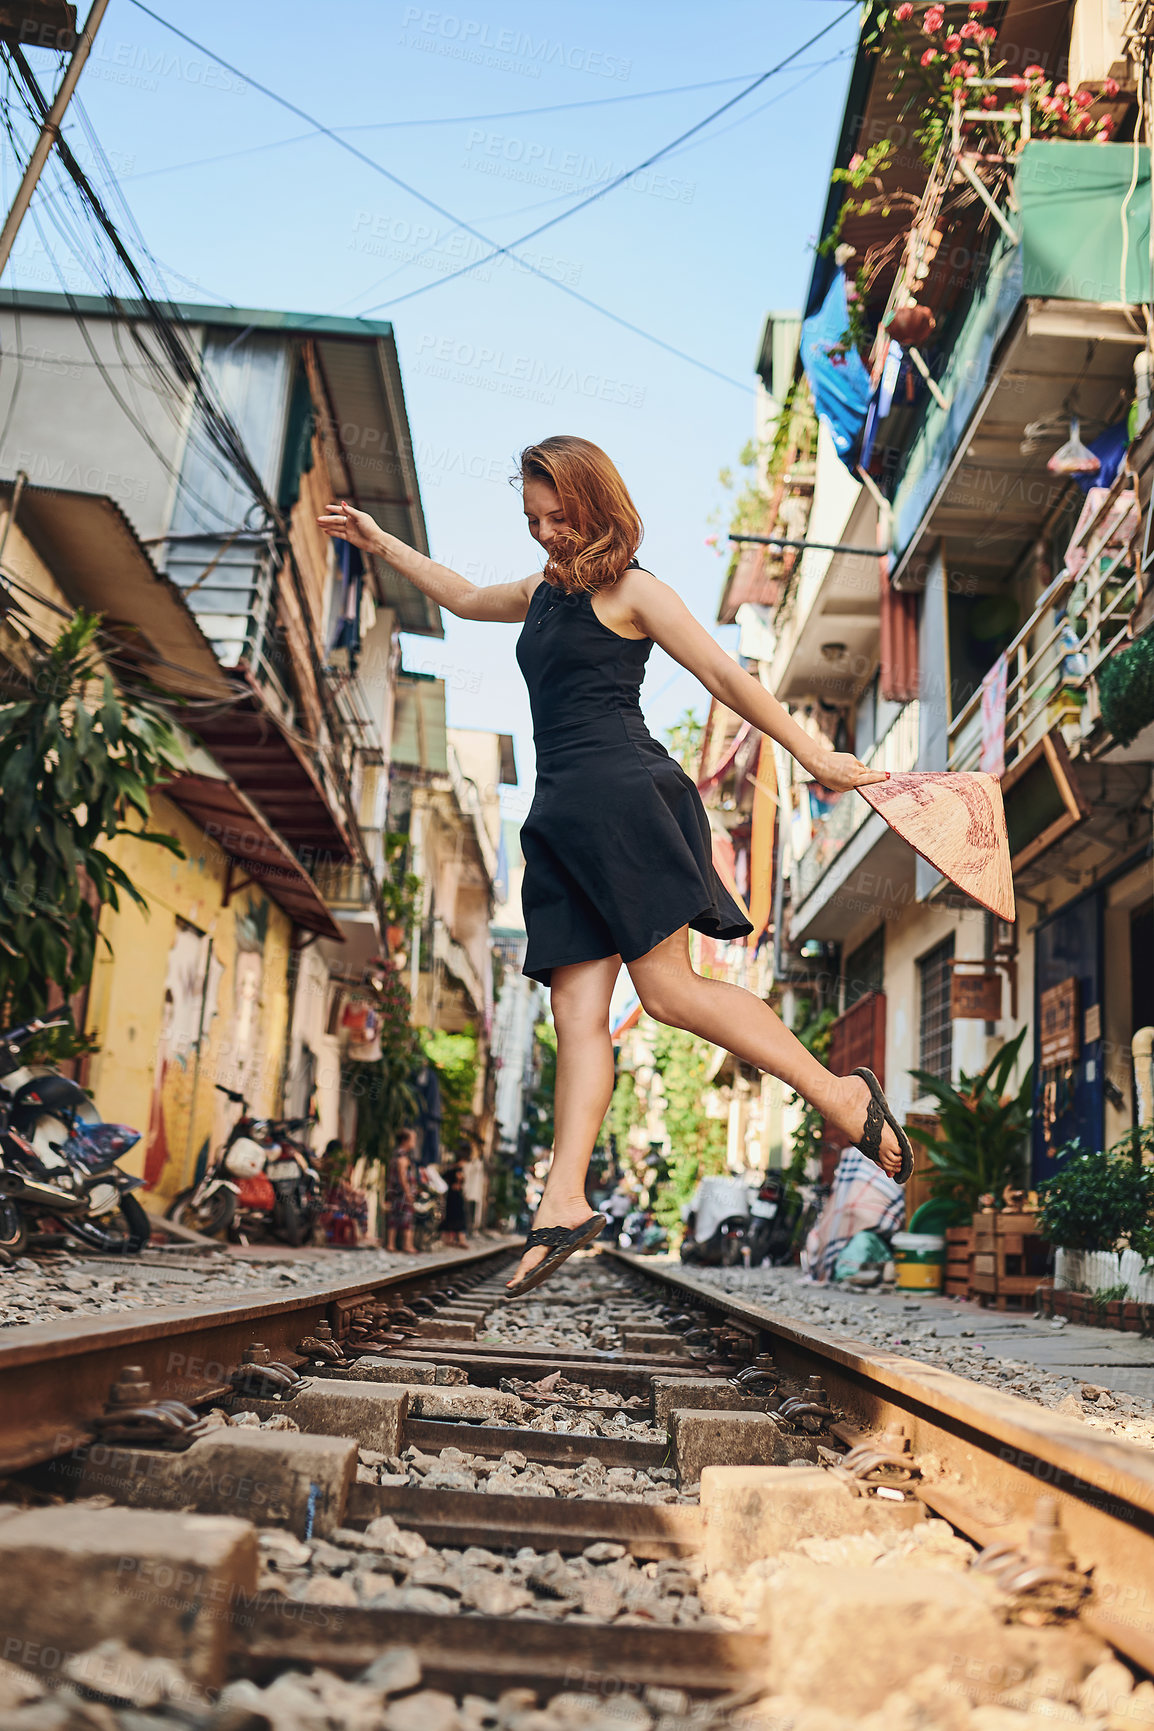 Buy stock photo Shot of a woman out on the train tracks in the streets of Vietnam